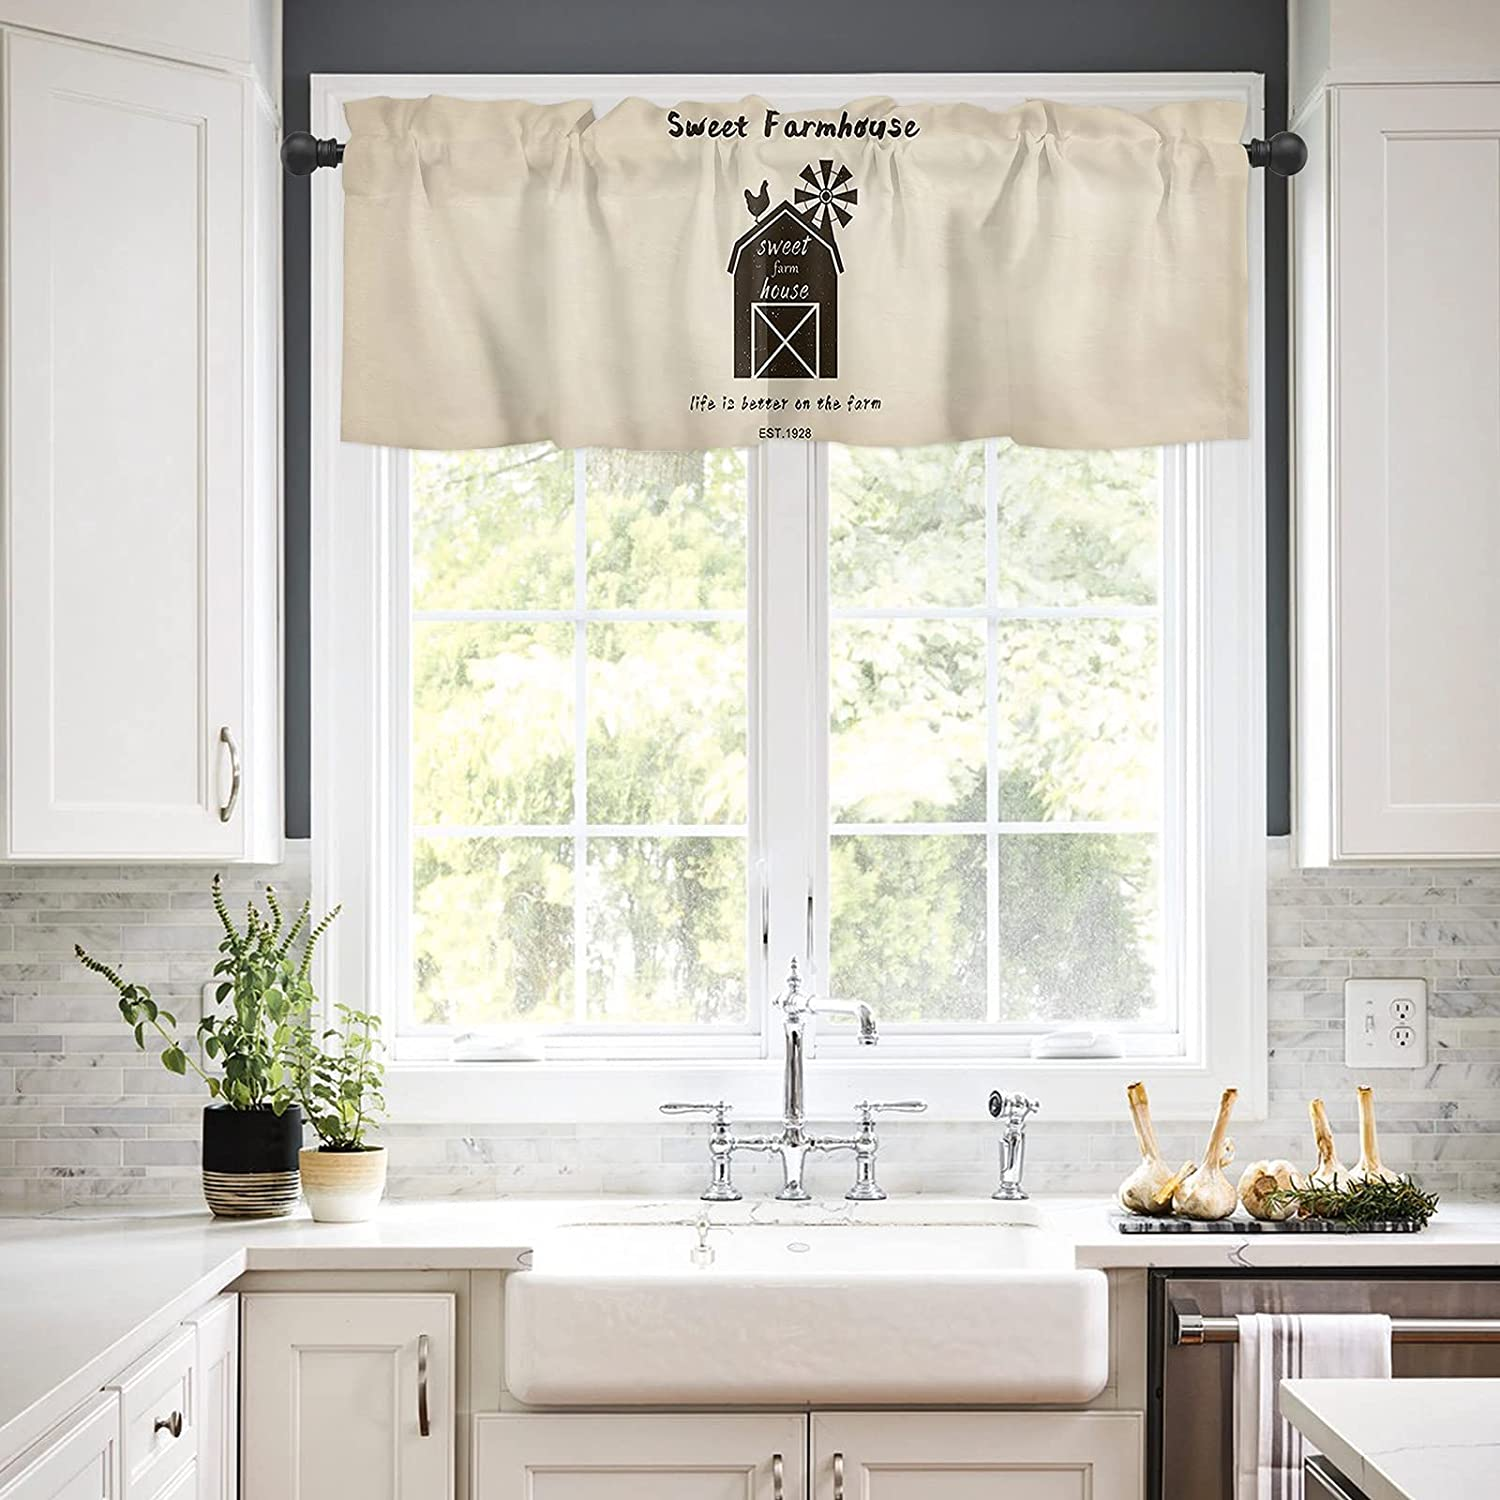 Rod Pocket Window Valances Curtains Farmhouse for Kitchen Sweet Beauty Discount mail order products